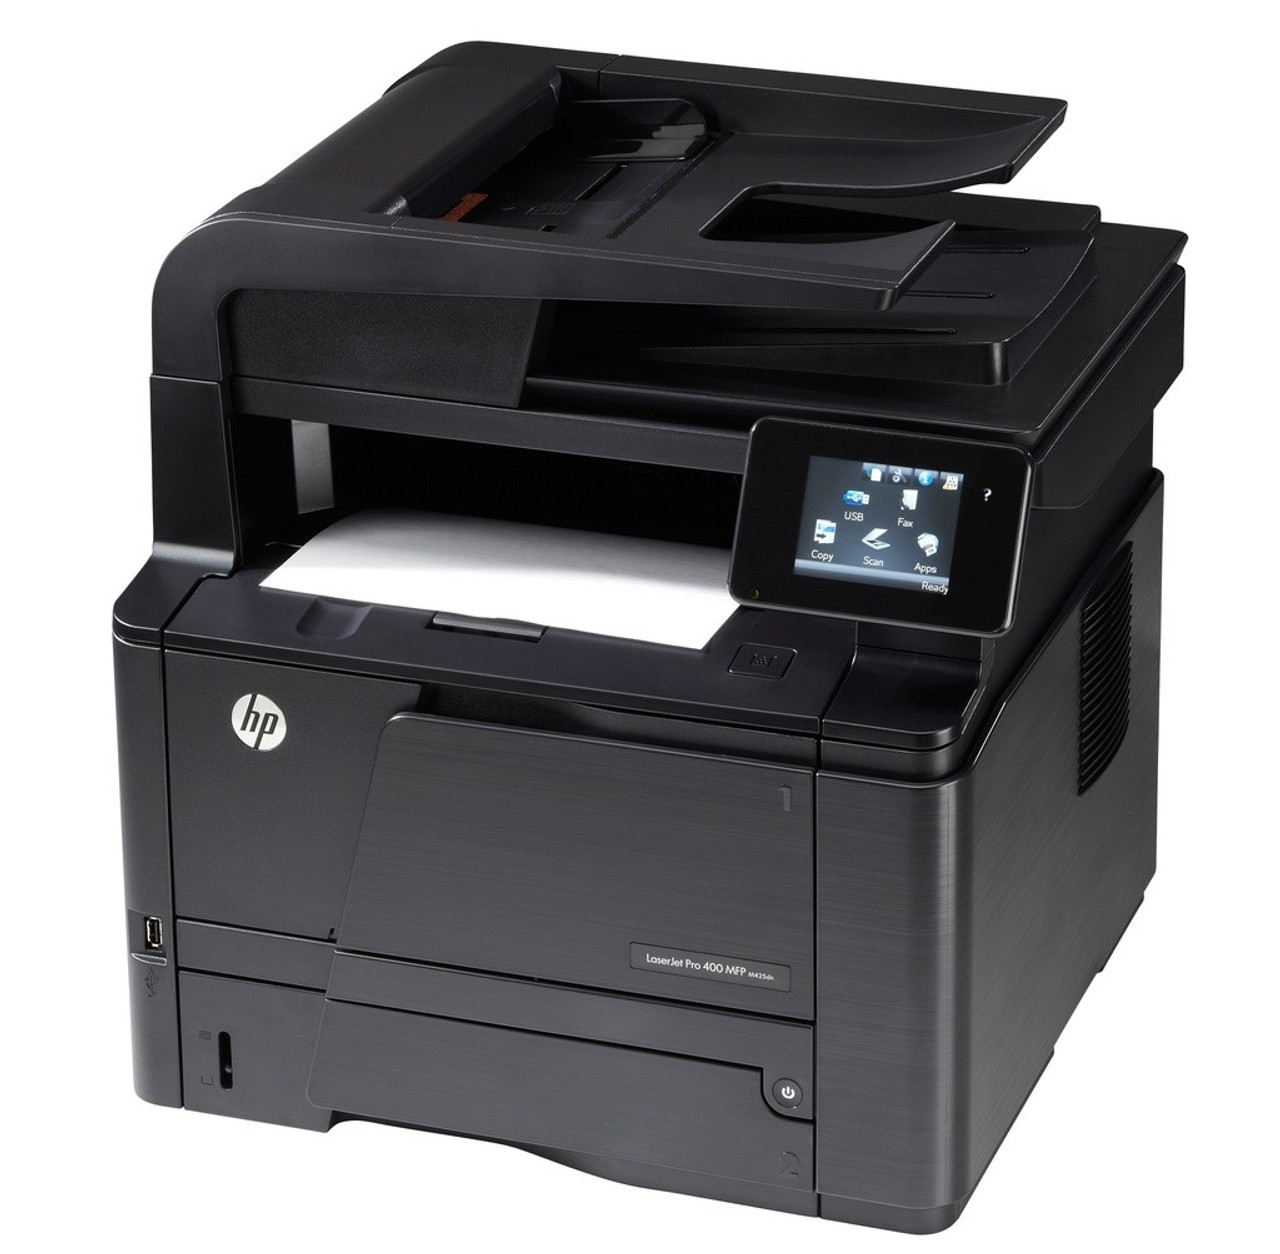 HP LaserJet Pro M425DN MFP - CF286A - HP Laser Printer for sale